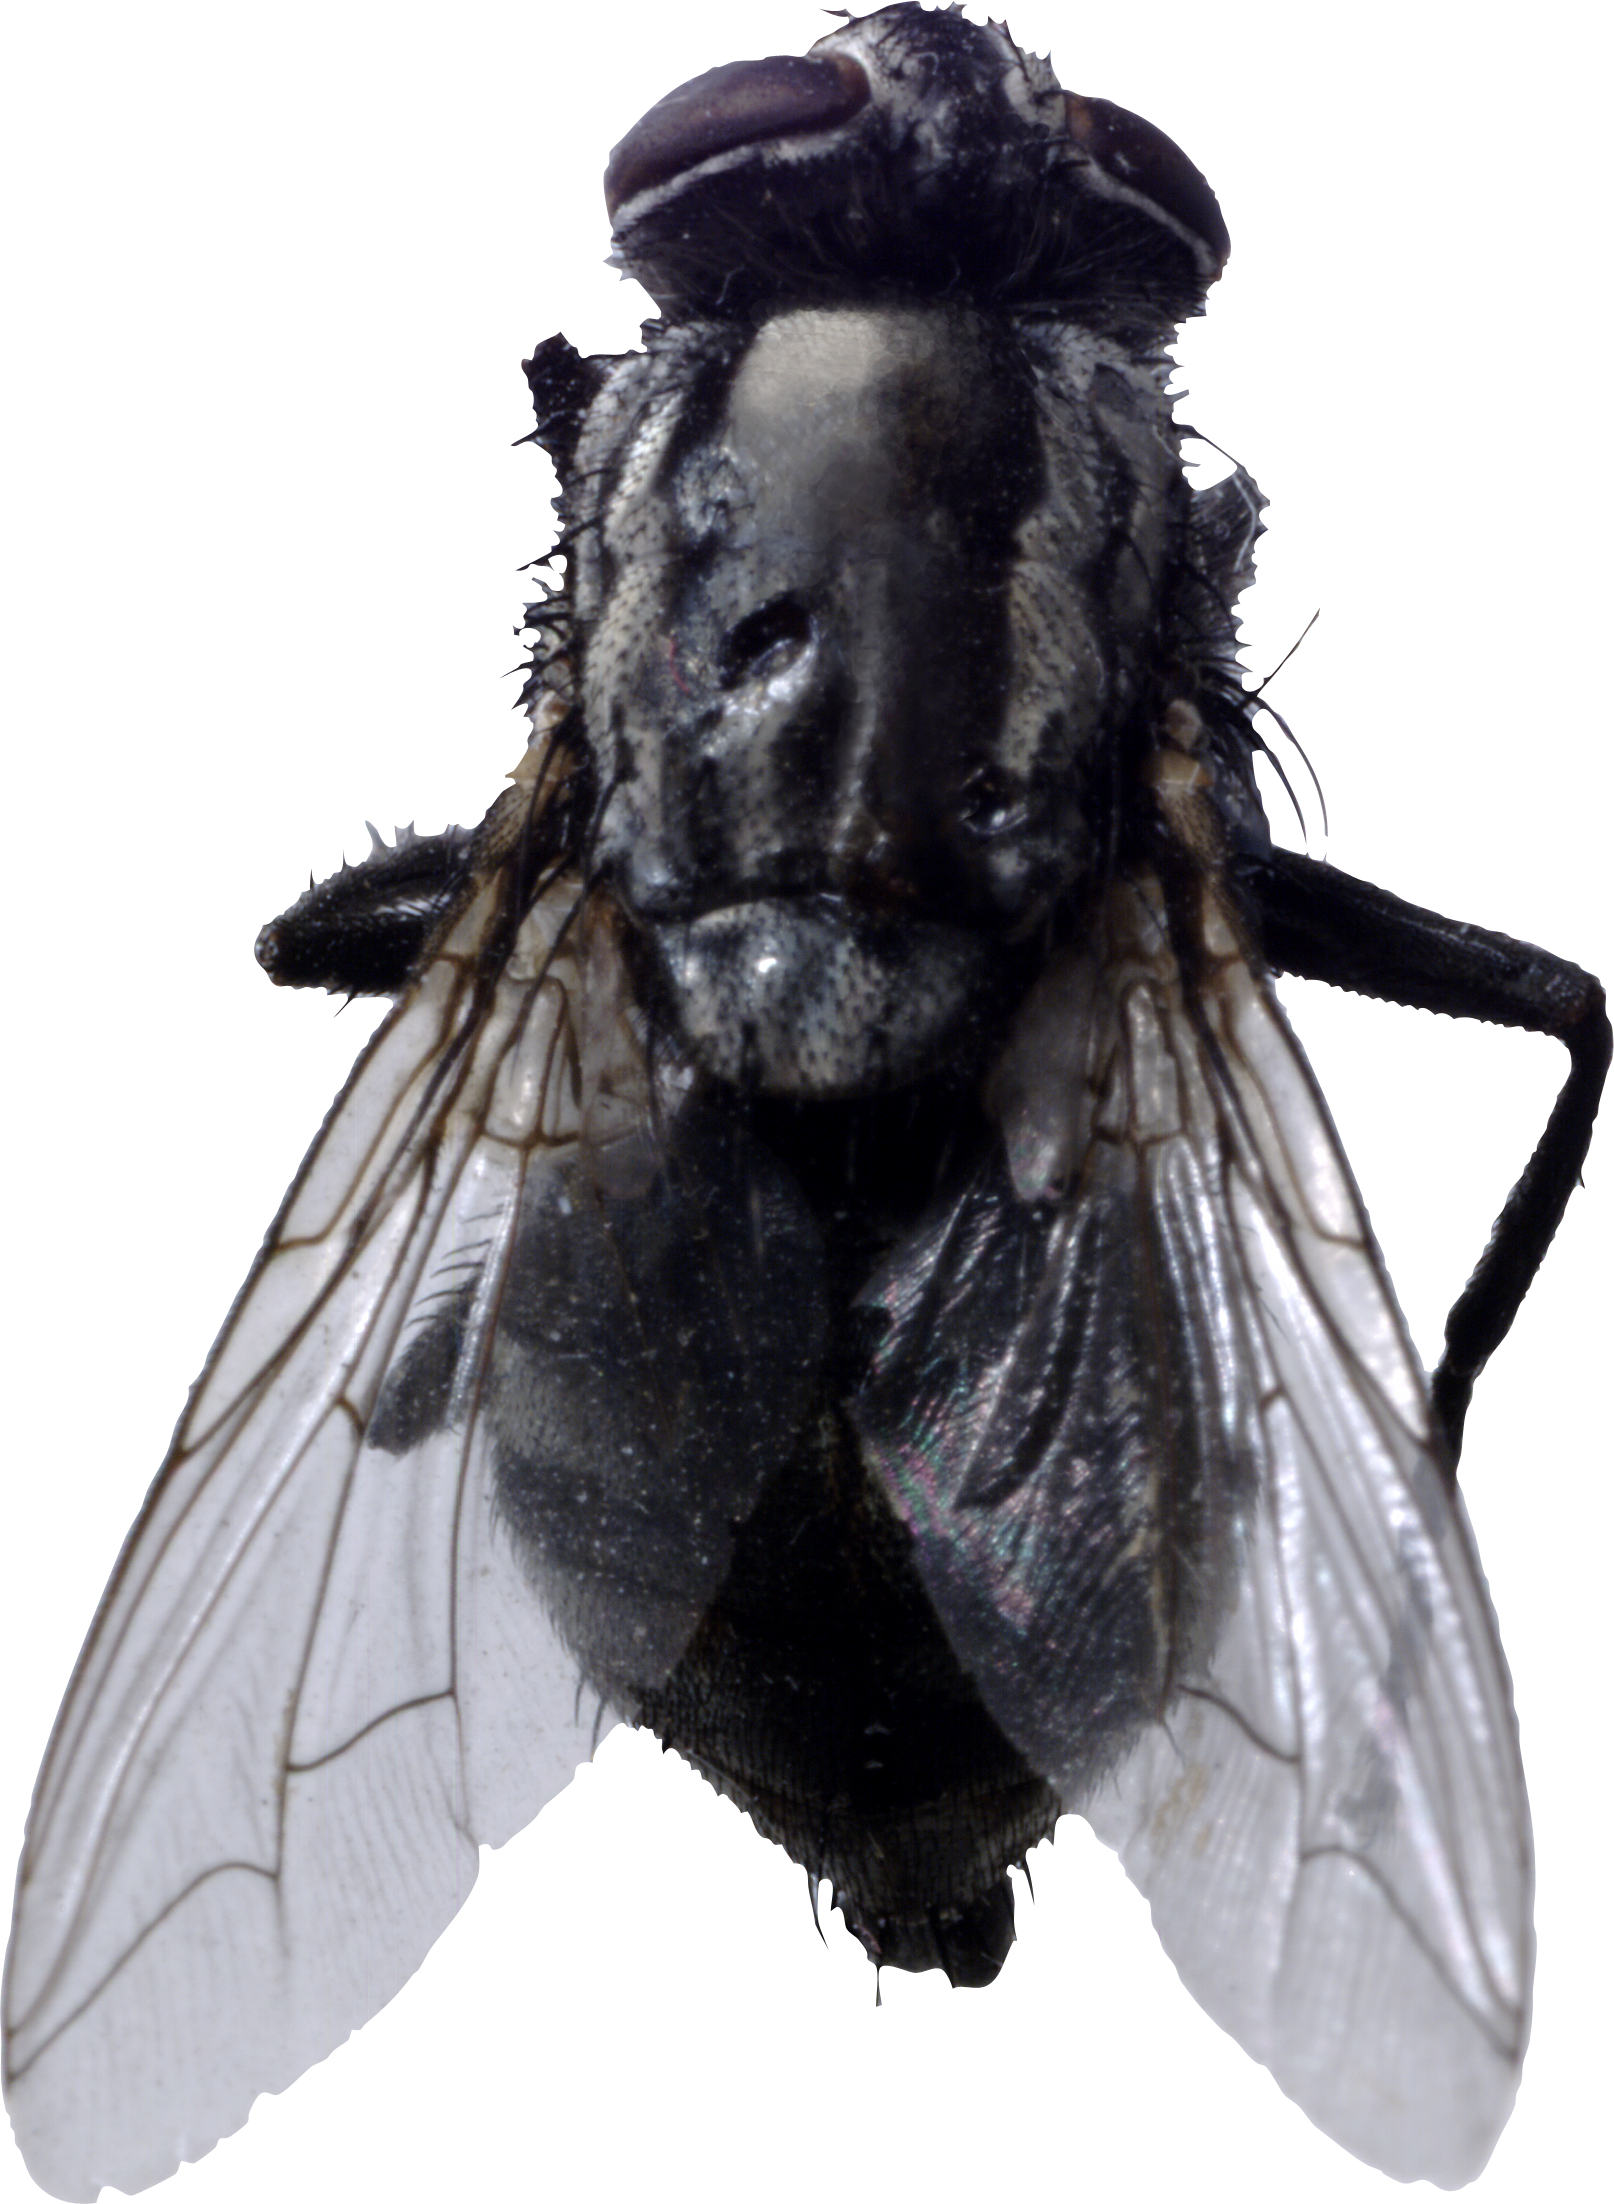 Fly png image free. Flies clipart two